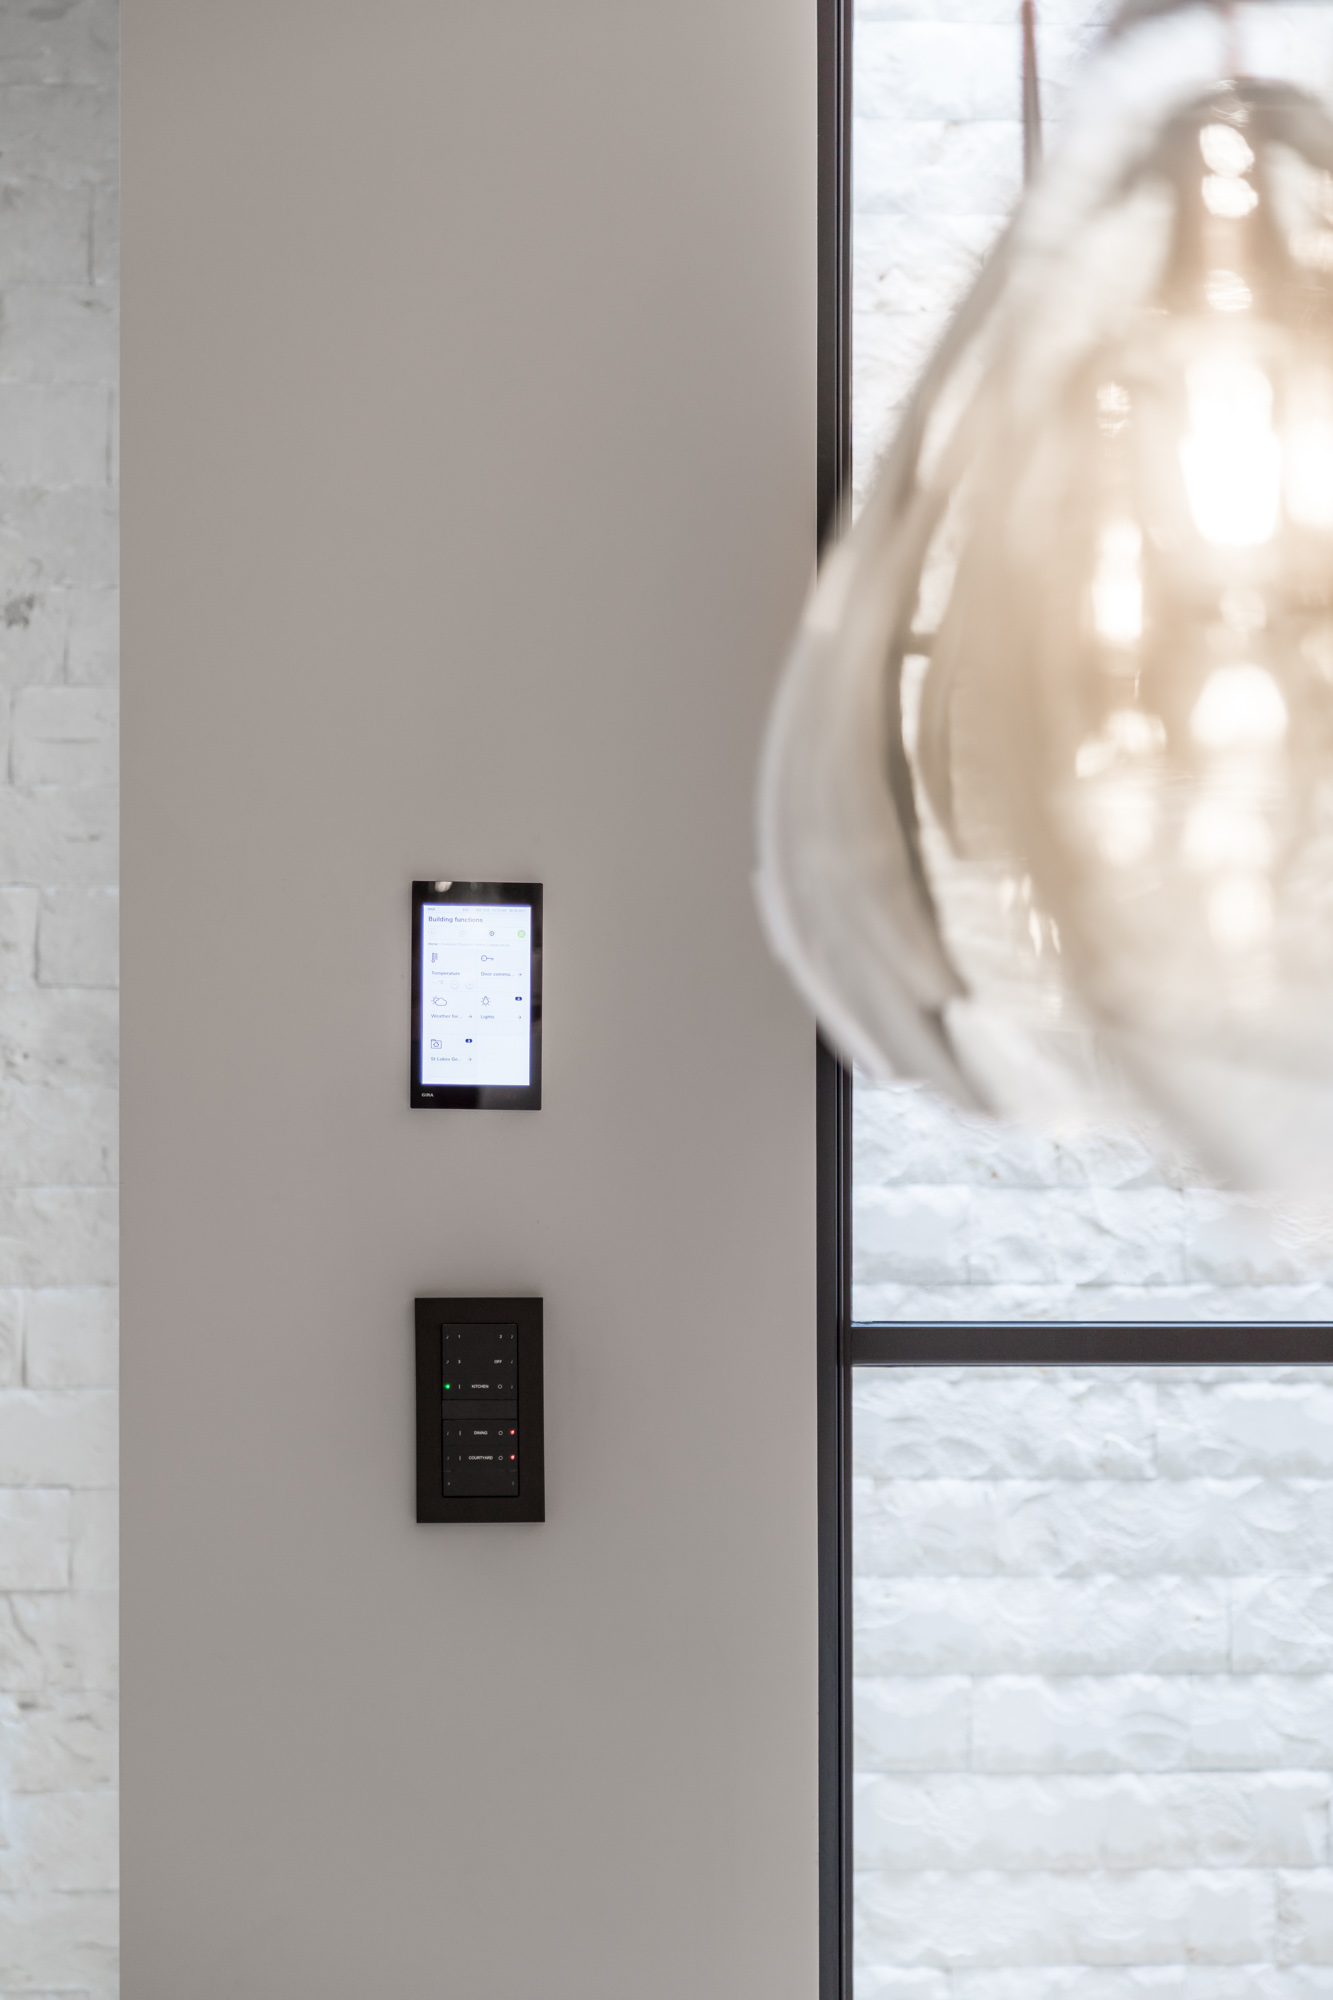 jonathan bond, interior photographer, electronic gadget on wall, chelsea, london